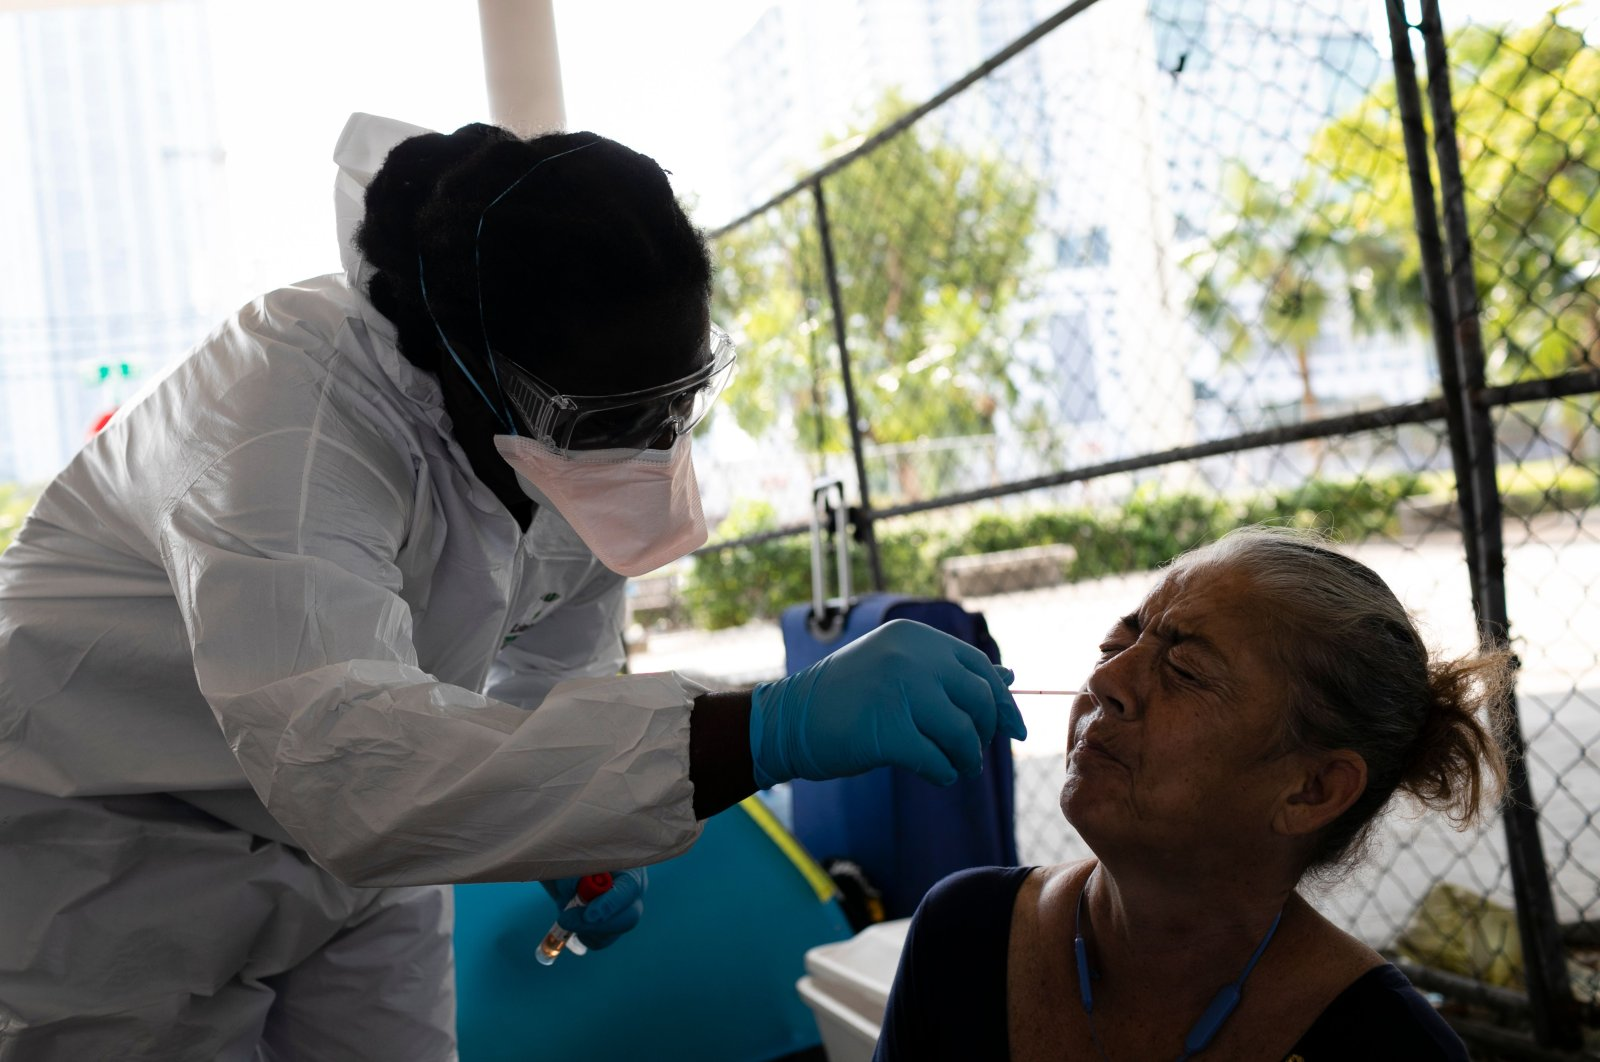 A worker for the Miami-Dade County Homeless Trust takes a sampler test from Elizabeth Sokol, a homeless woman, for coronavirus disease (COVID-19) in downtown Miami, Florida on April 16, 2020. (AFP Photo)